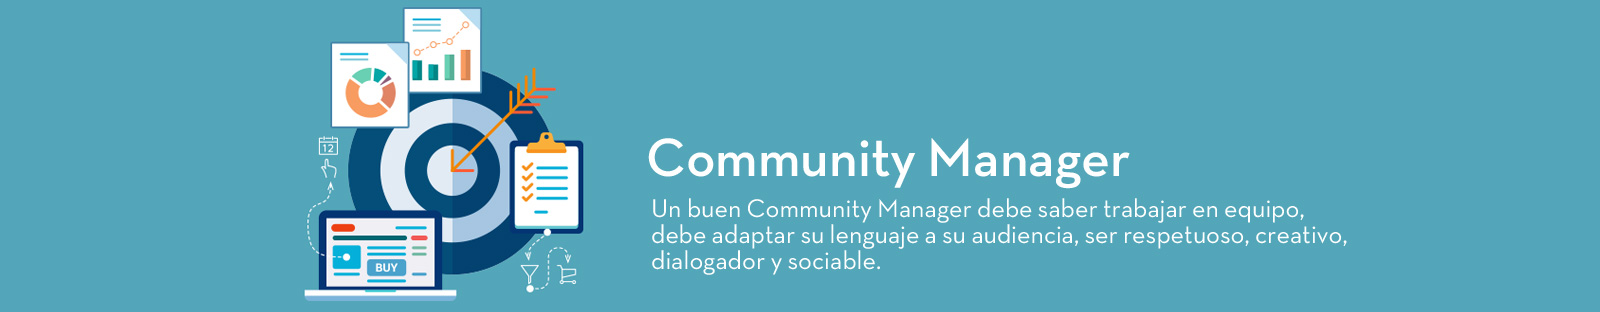 Community Manager. socialbeings